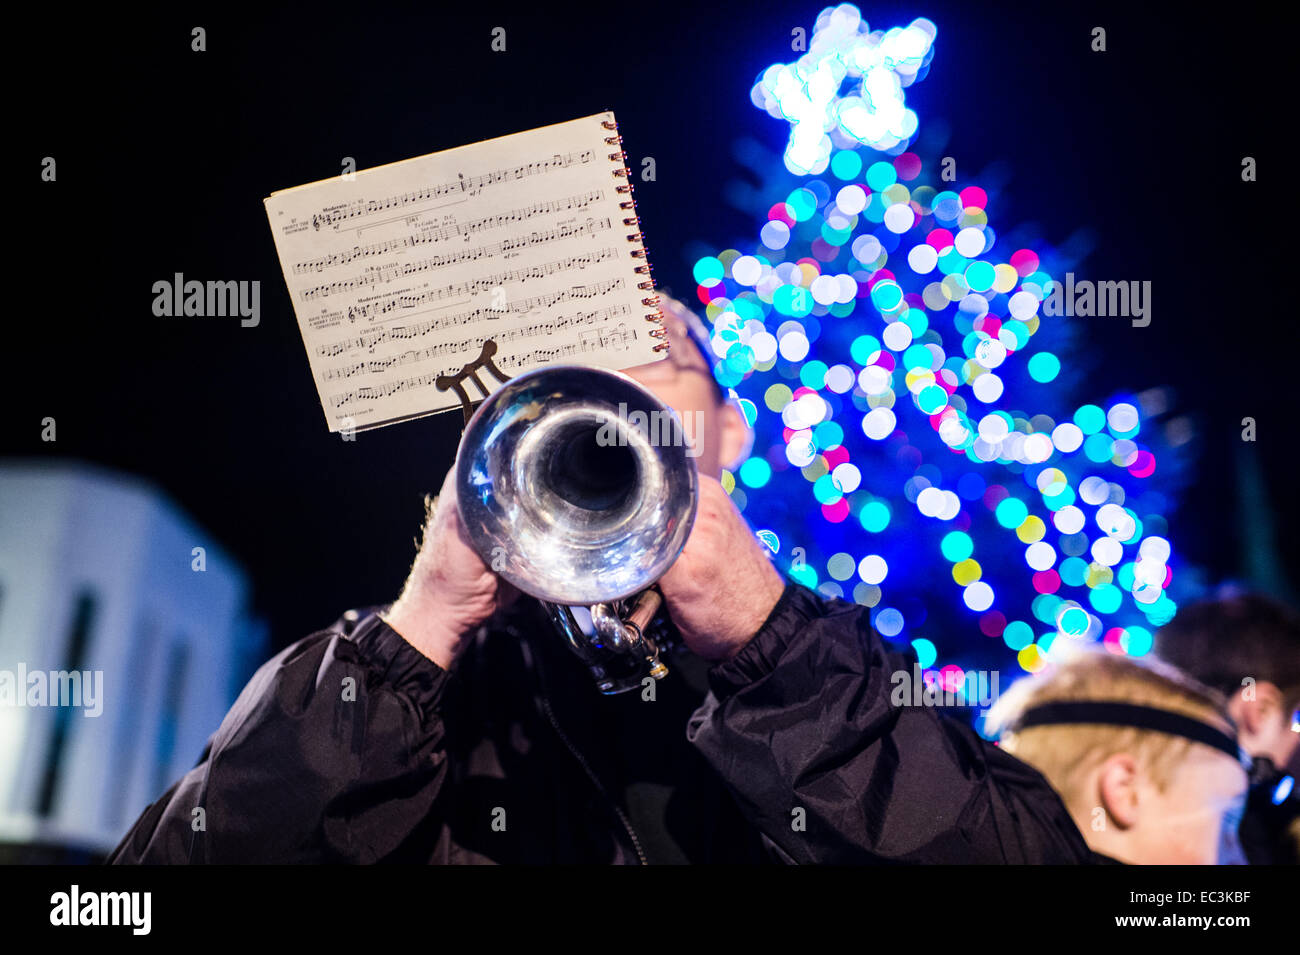 A man member of a brass band playing christmas carols on a brass trumpet instrument in front of a large Xmas tree, - Stock Image